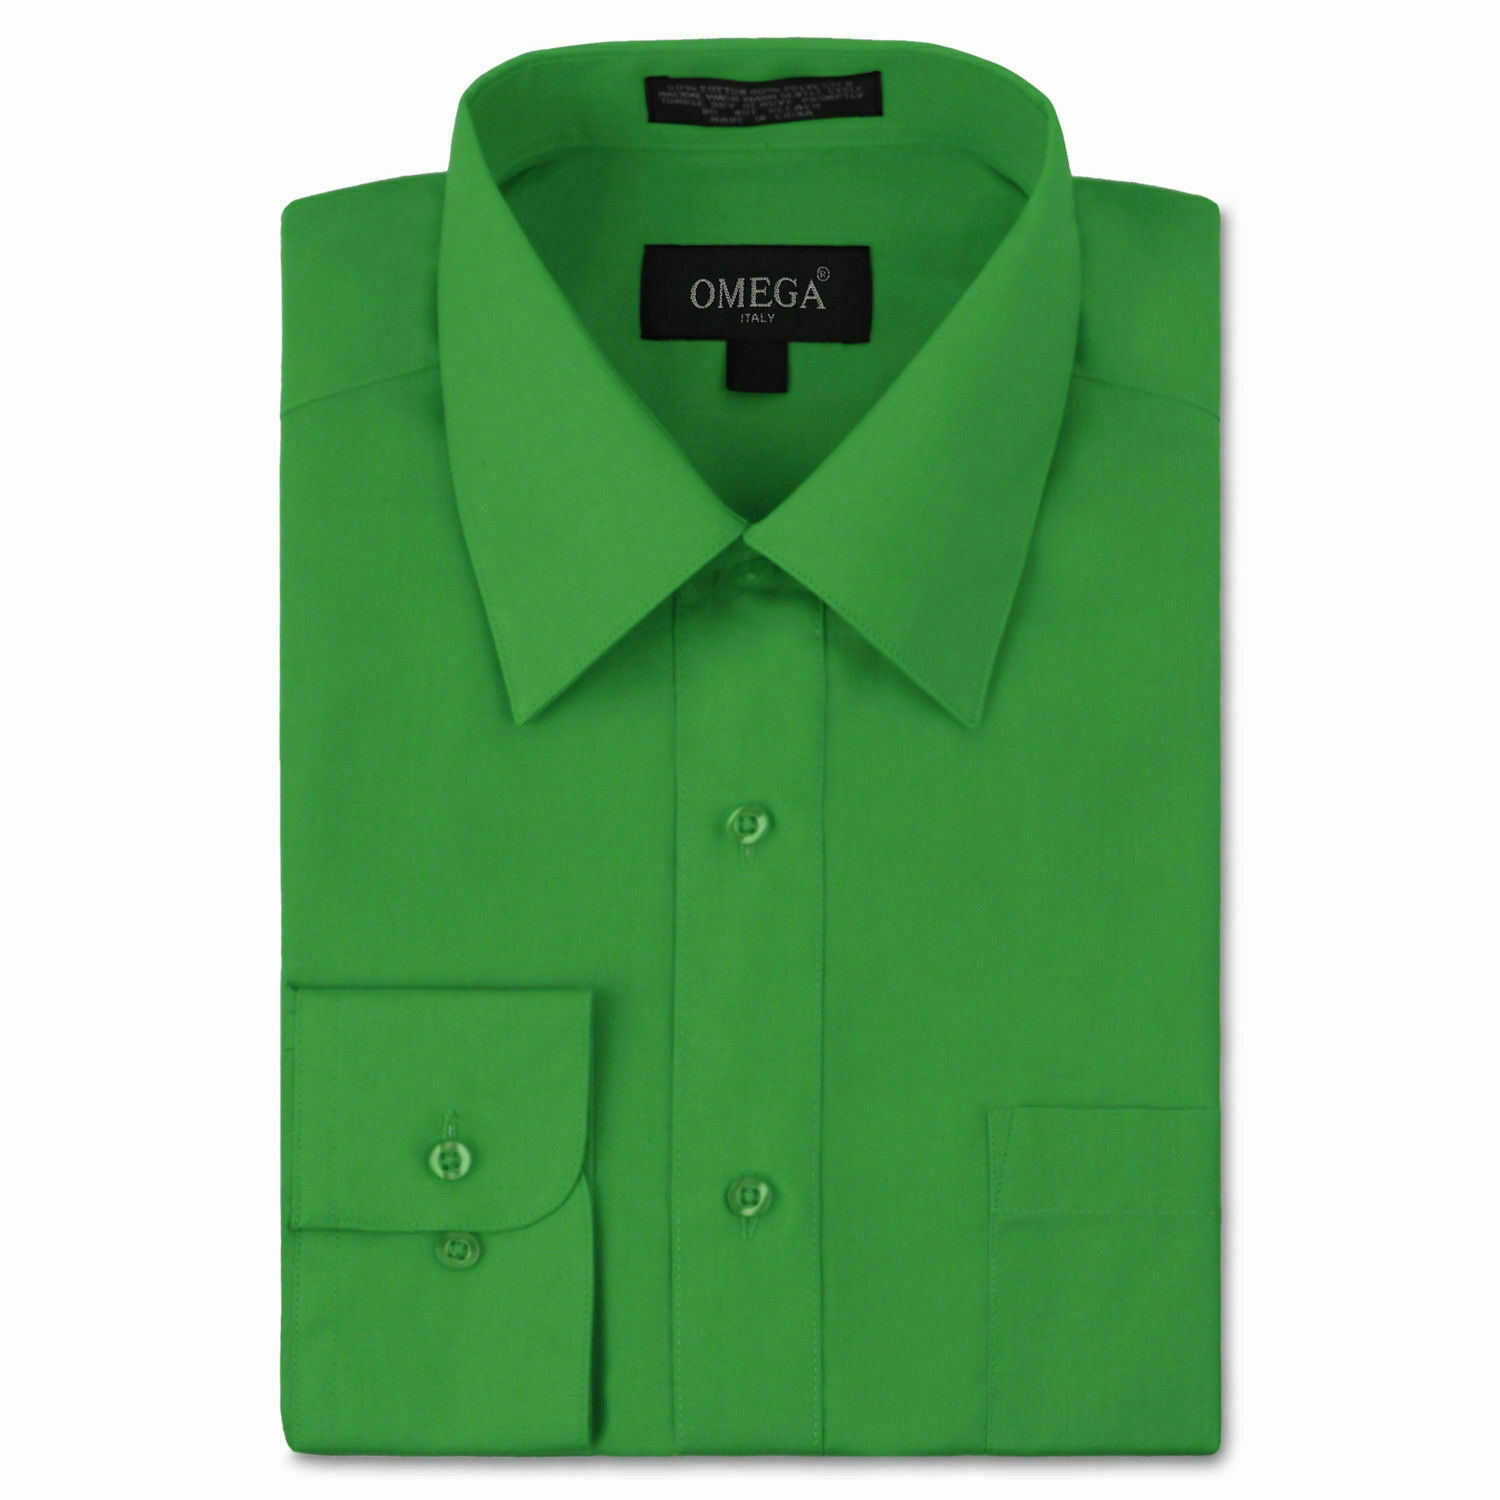 Omega Italy Men's Long Sleeve Green Regular Fit Button Up Dress Shirt - L